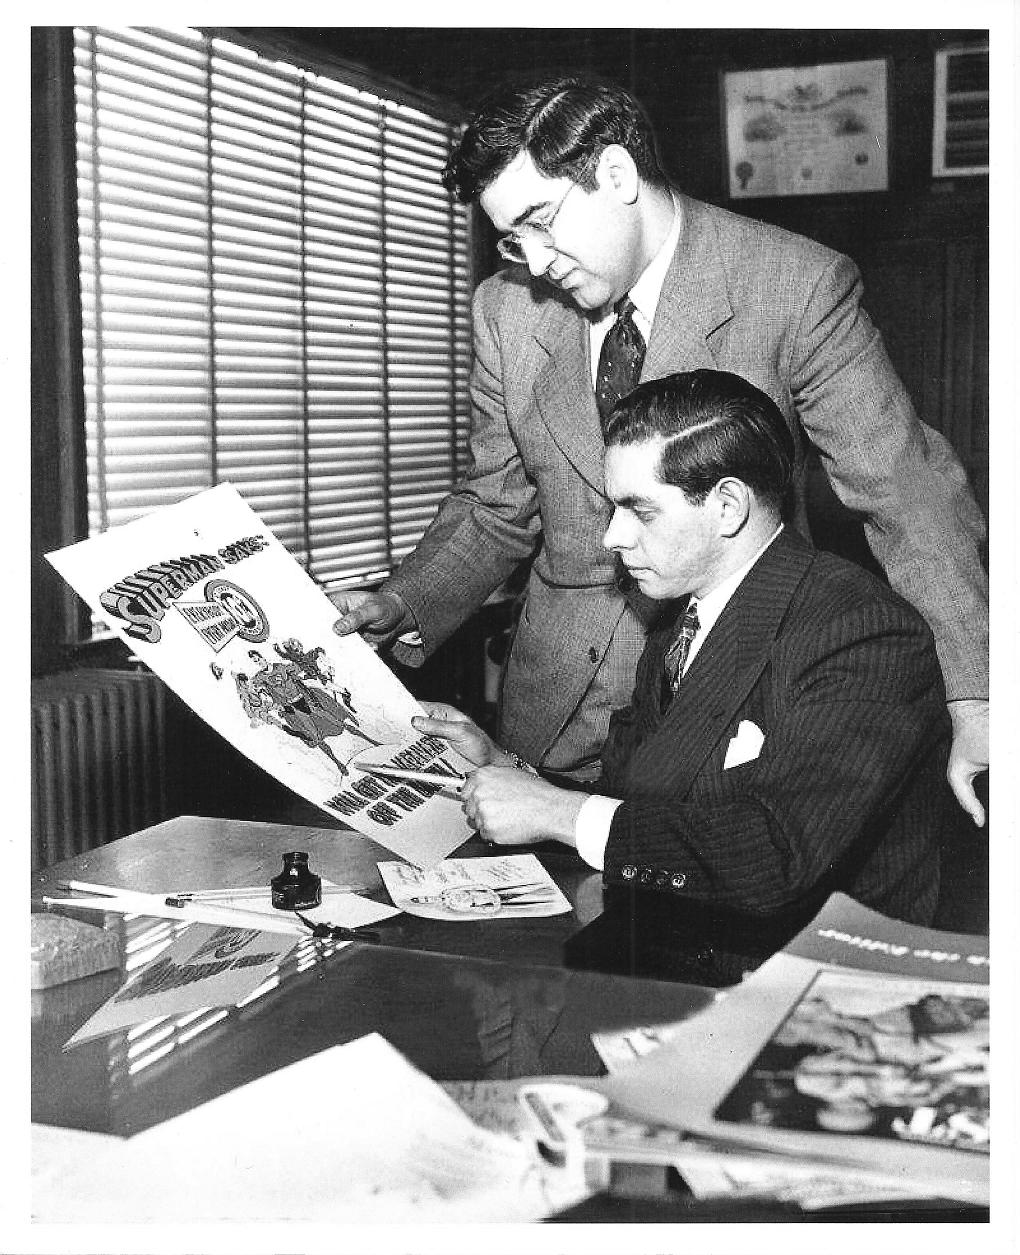 JERRY SIEGEL & JOE SHUSTER - The prolific comic book creators of the genre's earliest days, writer Siegel (1914-1996) and artist Shuster (1914-1992) collaborated in 1938 to create   Superman  , the first great comic book super-hero and one of the most recognizable images of the 20th century.